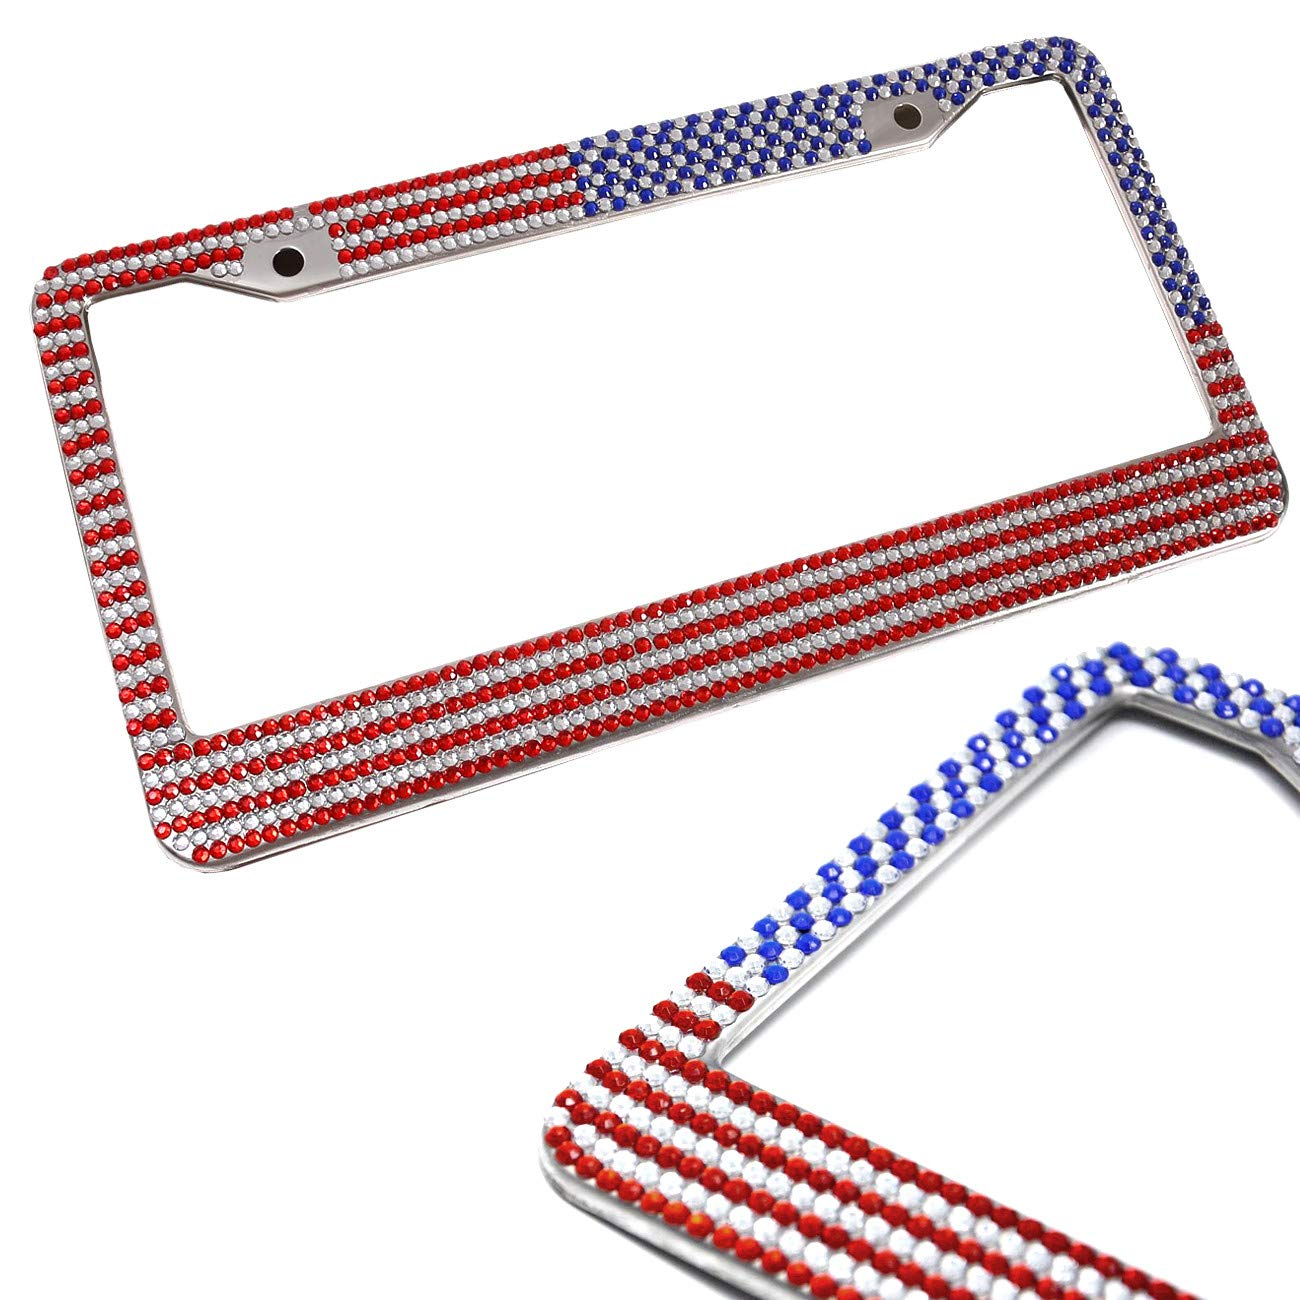 License Plate Frame Carbon Fiber NOT REAL CARBON FRAMES Black for Front /& Rear with Frame Fasteners and Screw Caps 2Pcs New 2 Hole Aluminum Plate Frame Carbon Fiber Style Slim Frame Cover